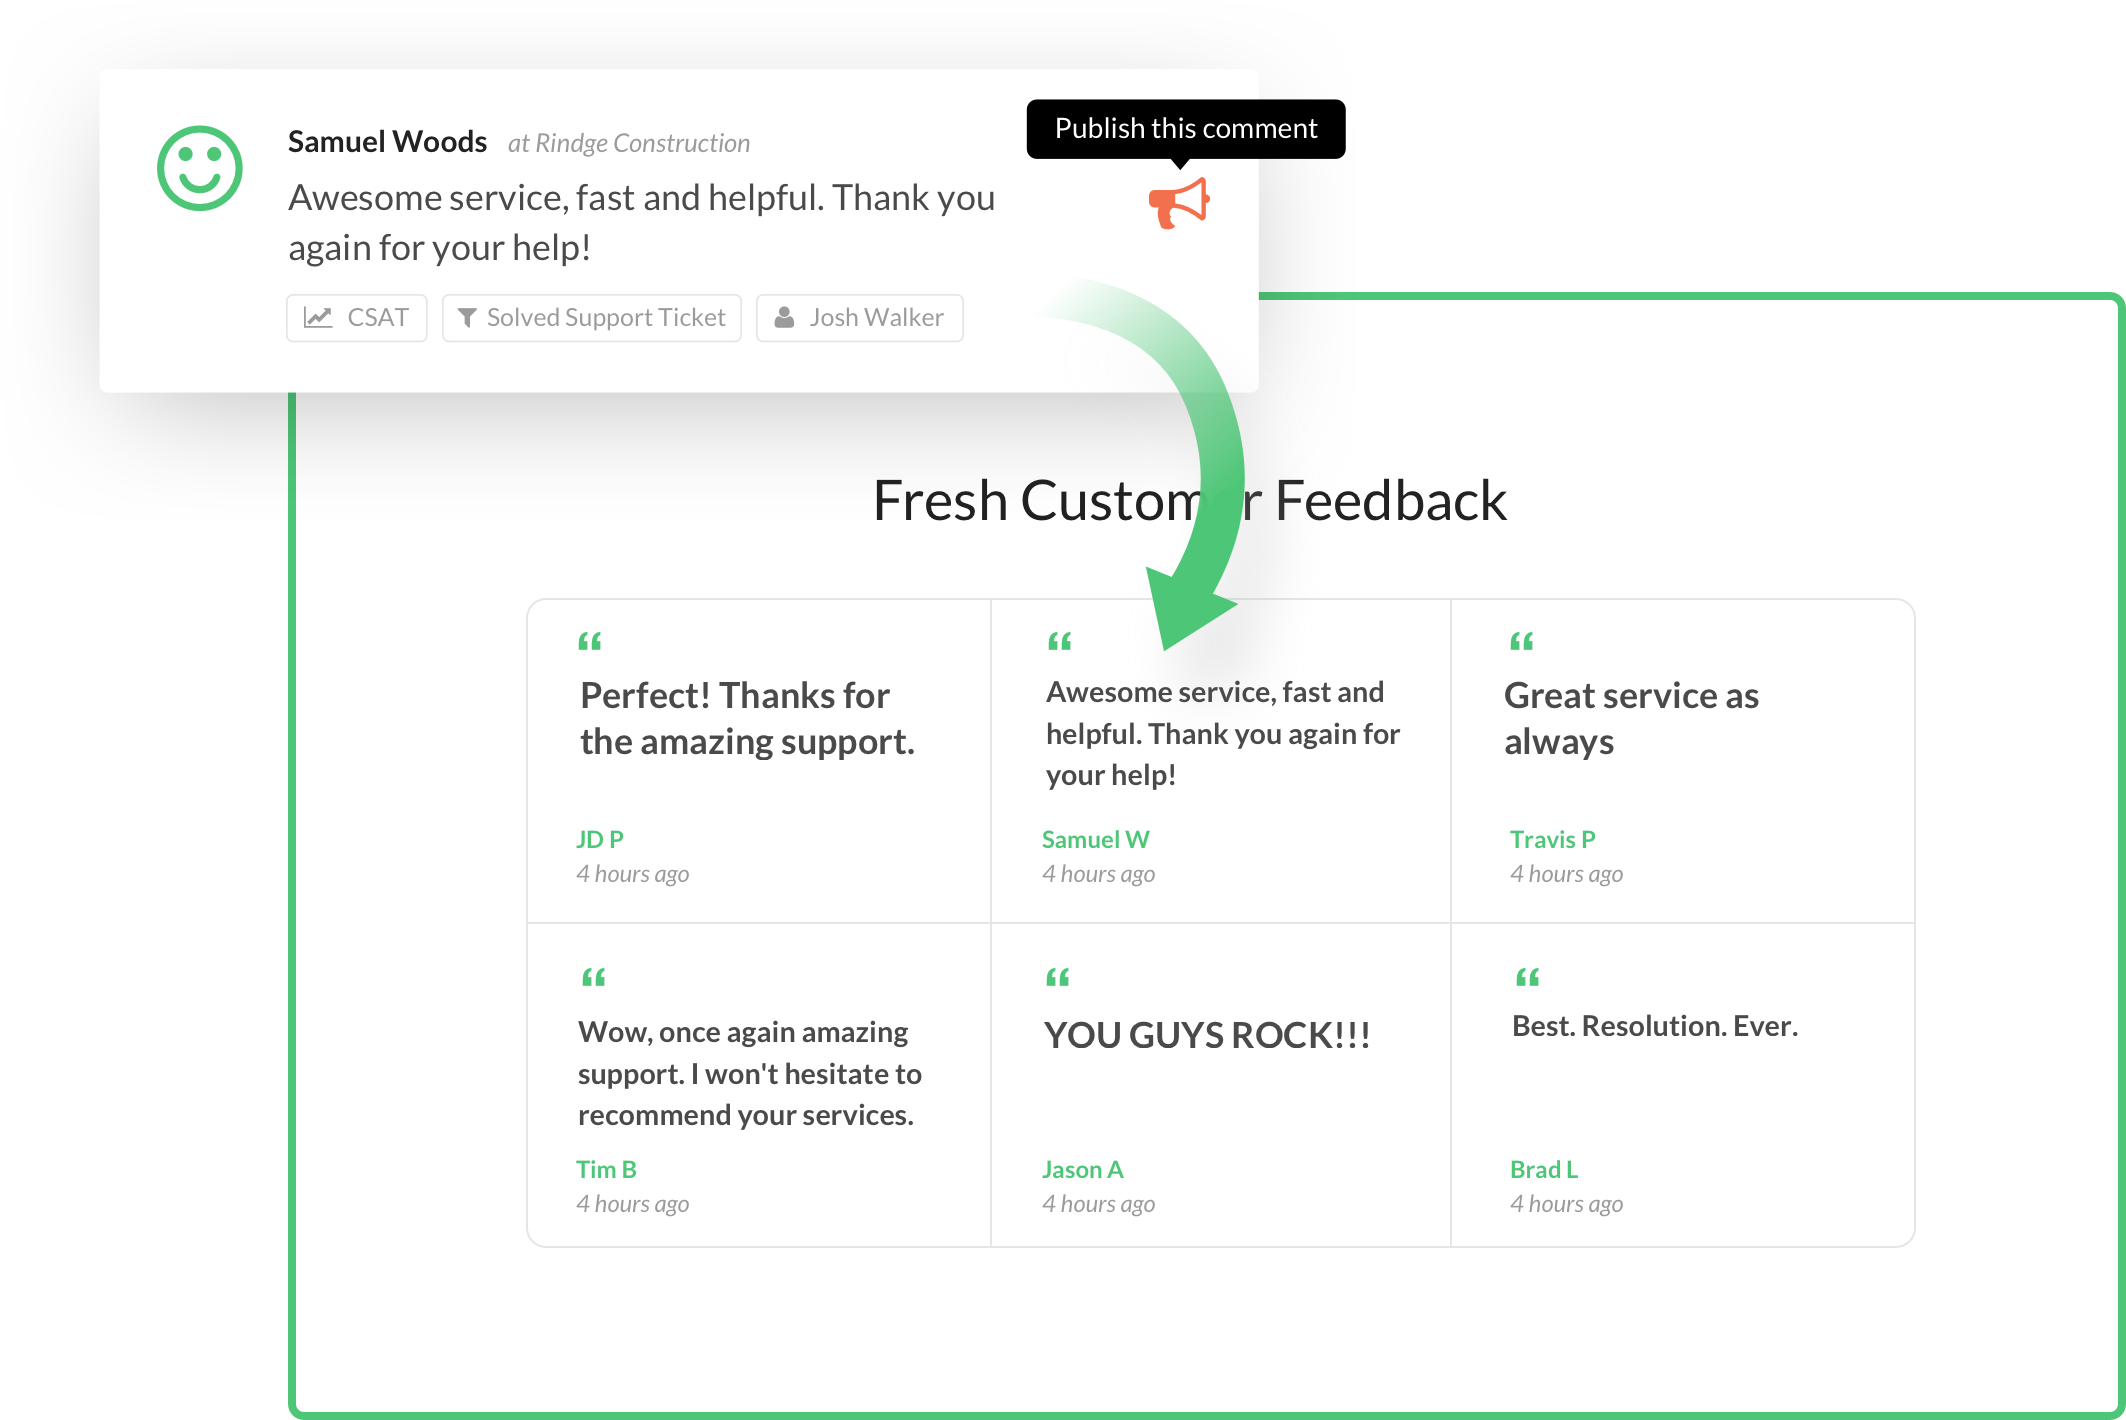 Positive feedback can be published to websites through the testimonials widget